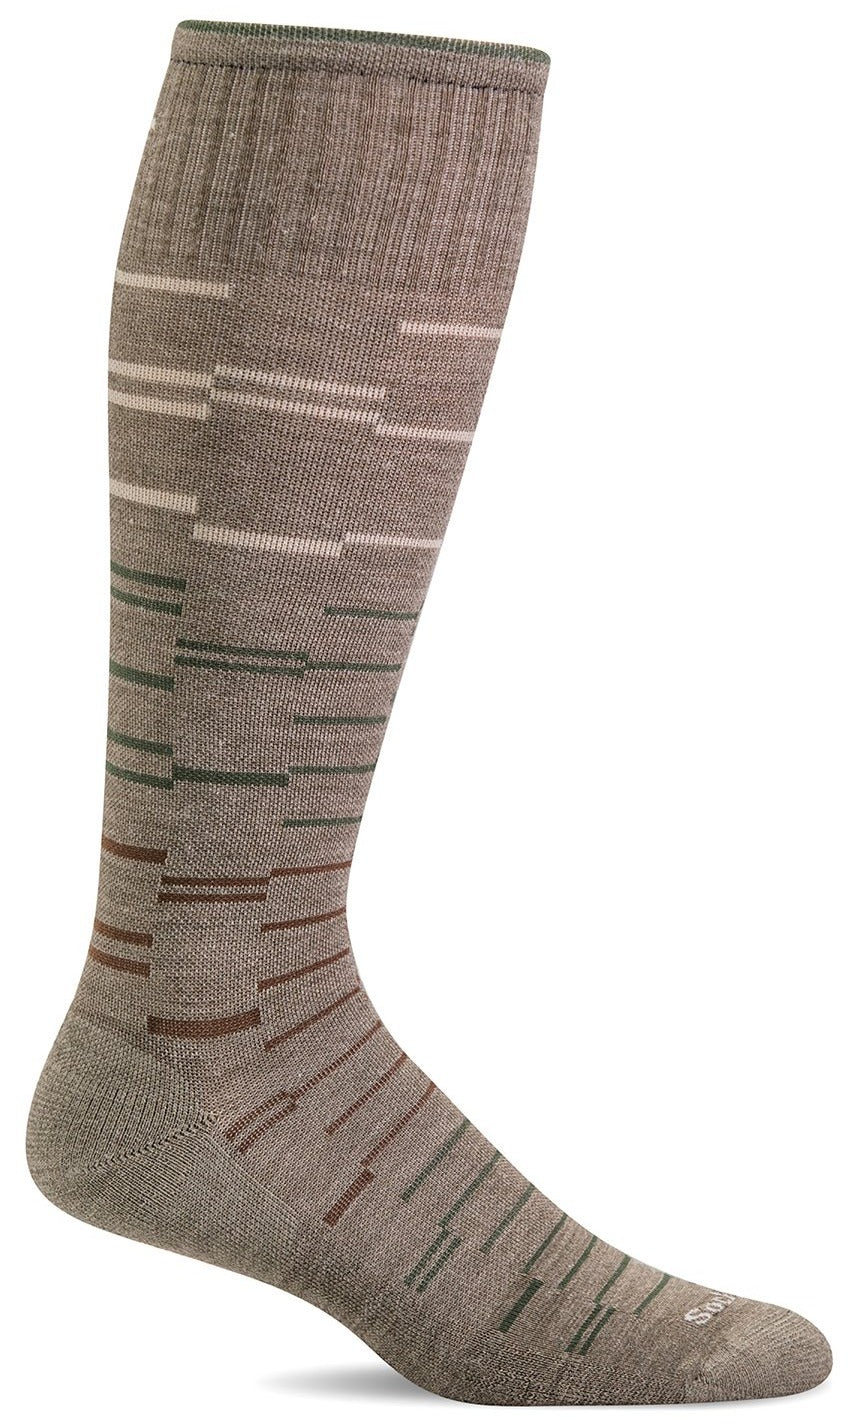 Dashing Knee-High - Khaki Moderate Compression (15-20mmHg)